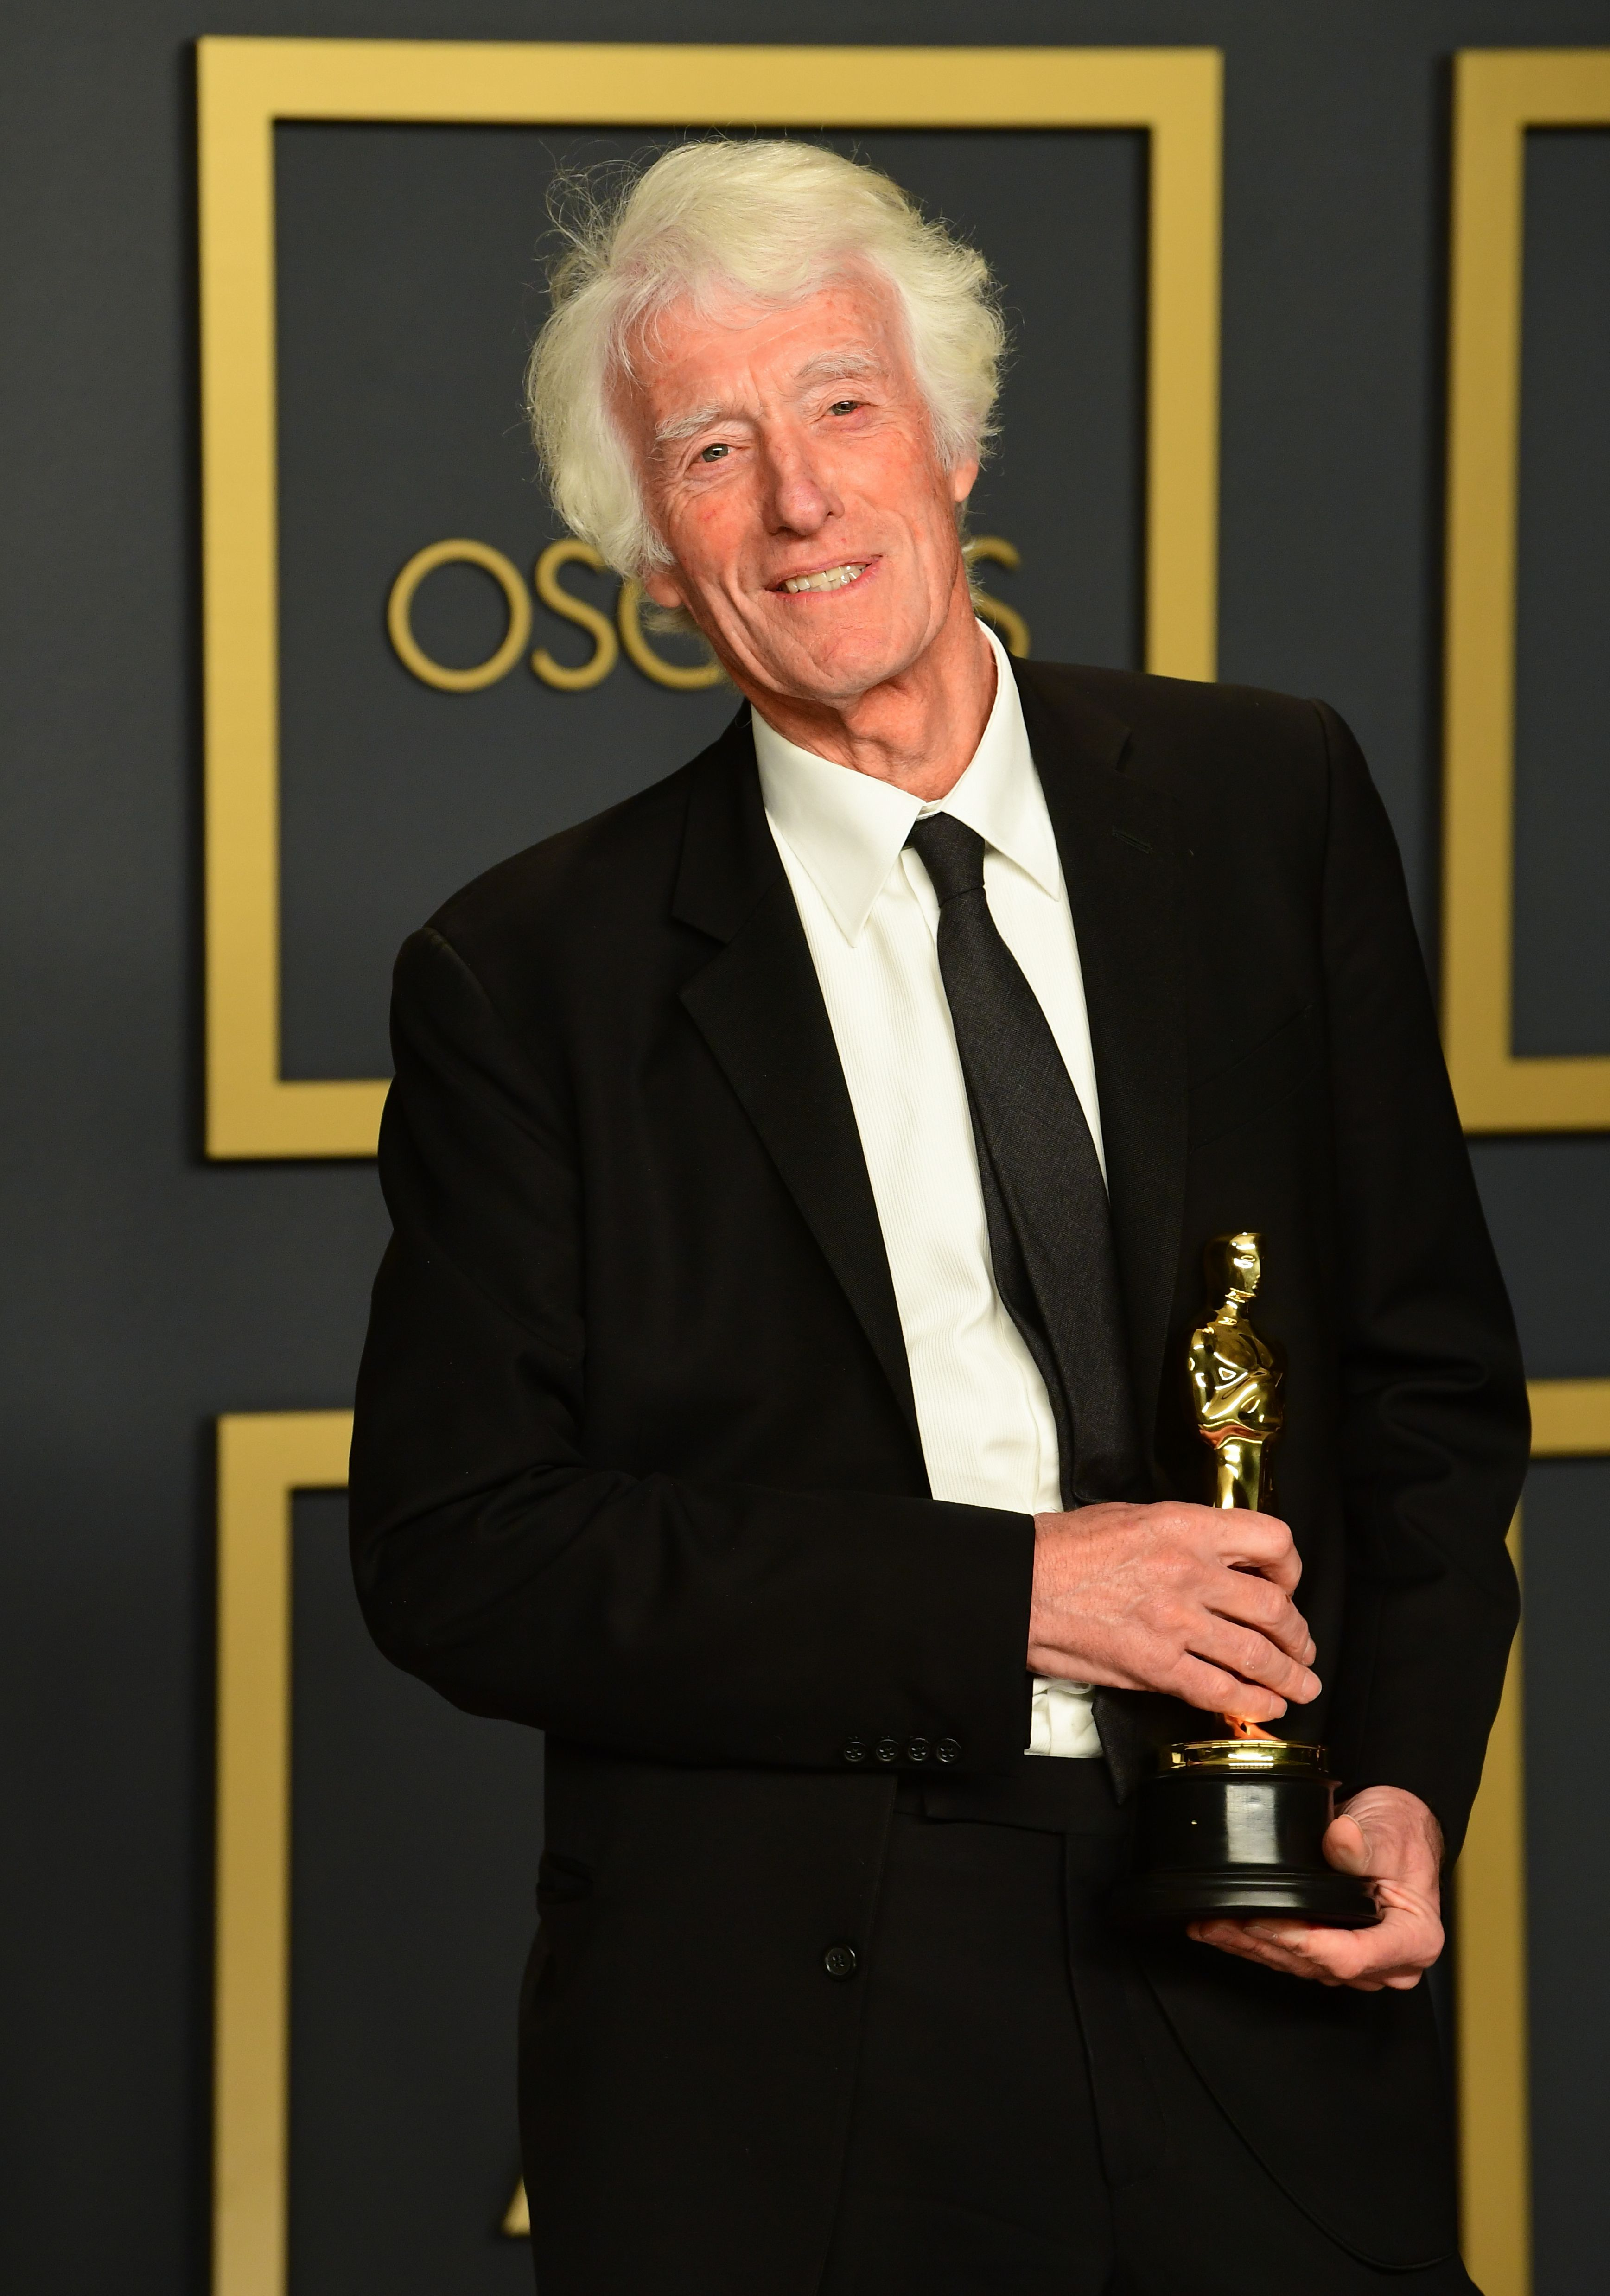 Roger Deakins at an event for The Oscars (2020)